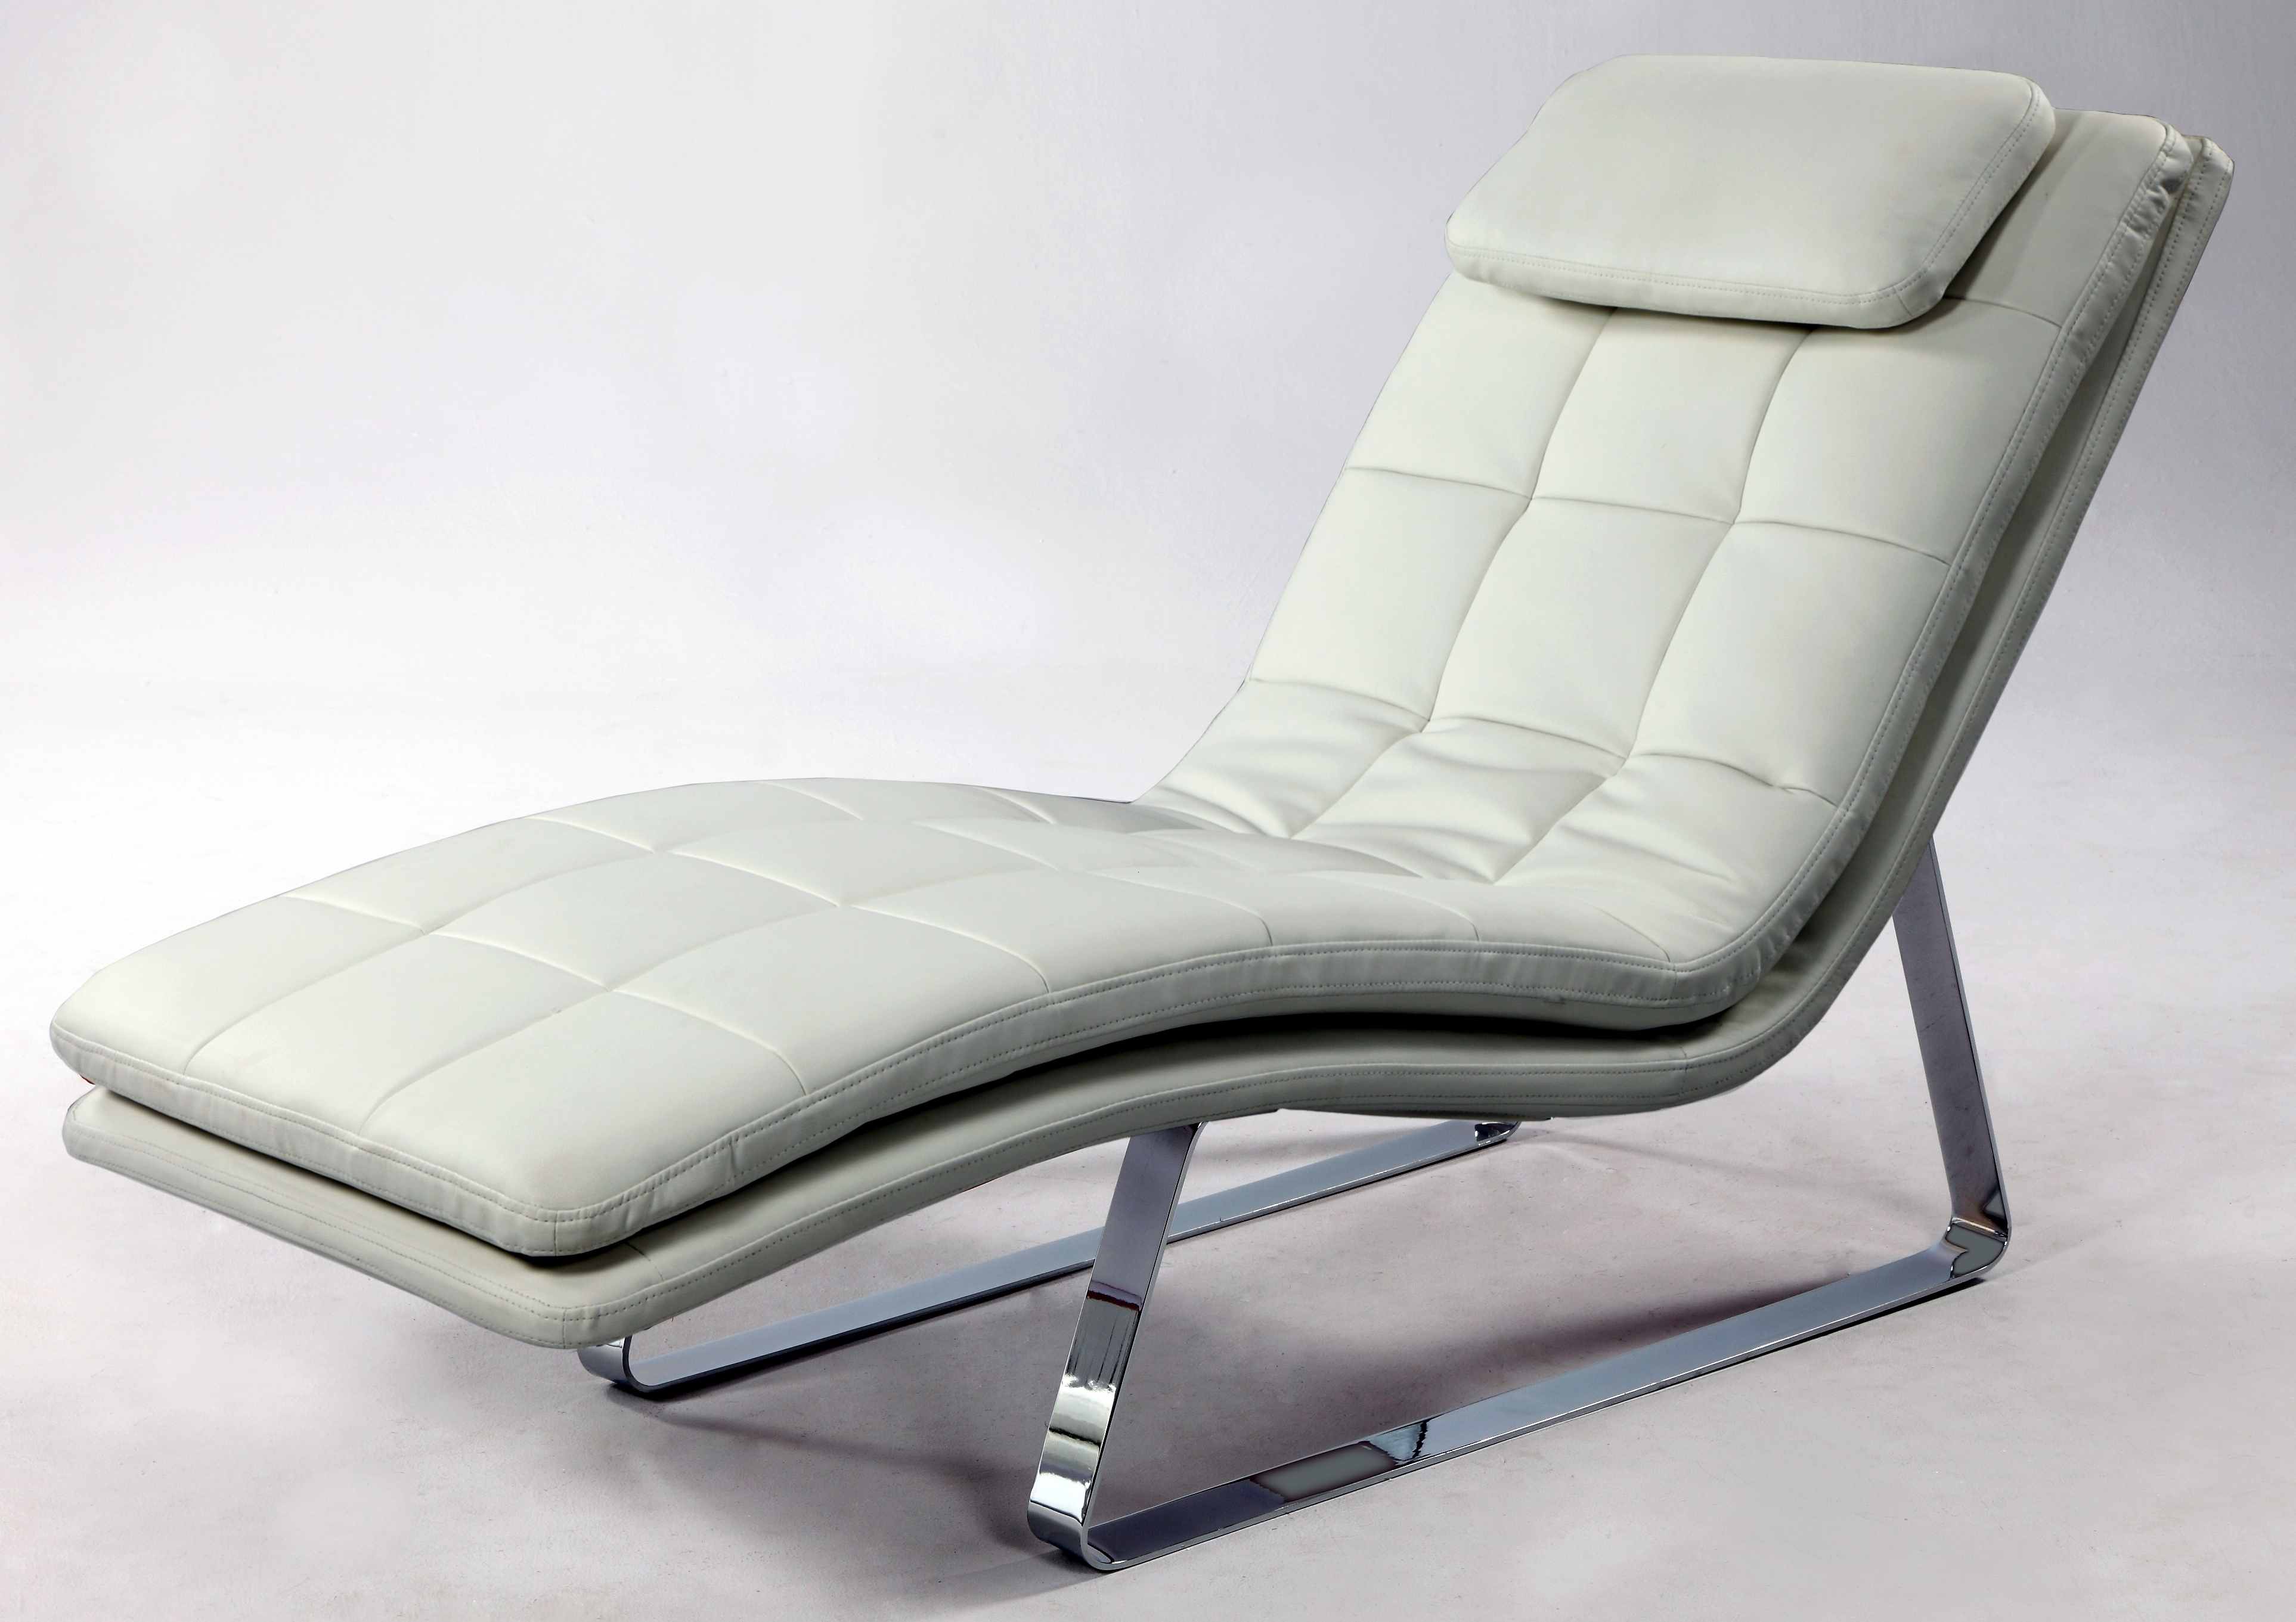 Favorite Contemporary Chaise Lounges In Full Bonded Leather Tufted Chaise Lounge With Chrome Legs New York (View 11 of 15)